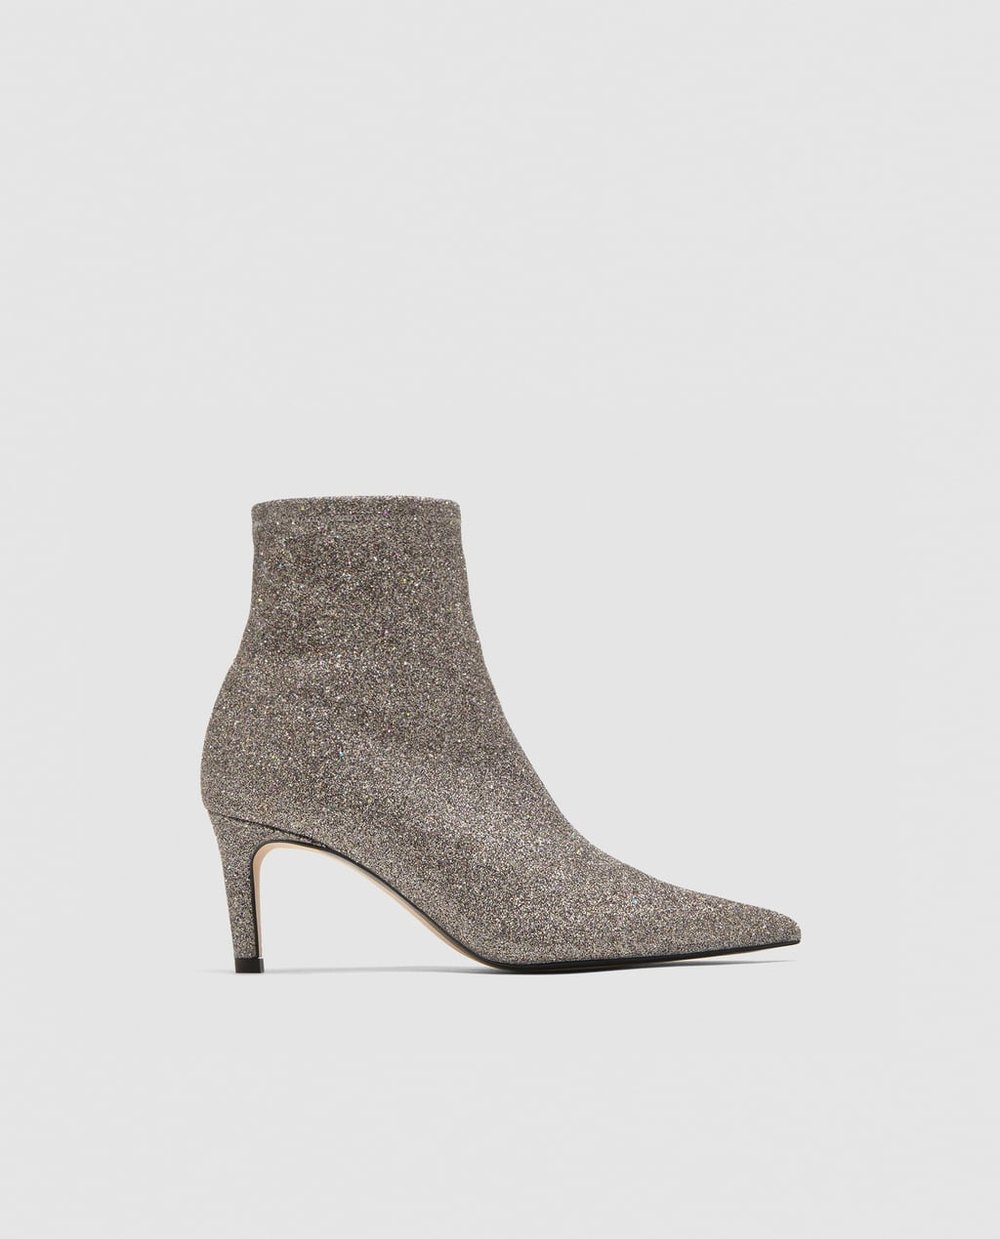 Zara Ankle Boots, $100